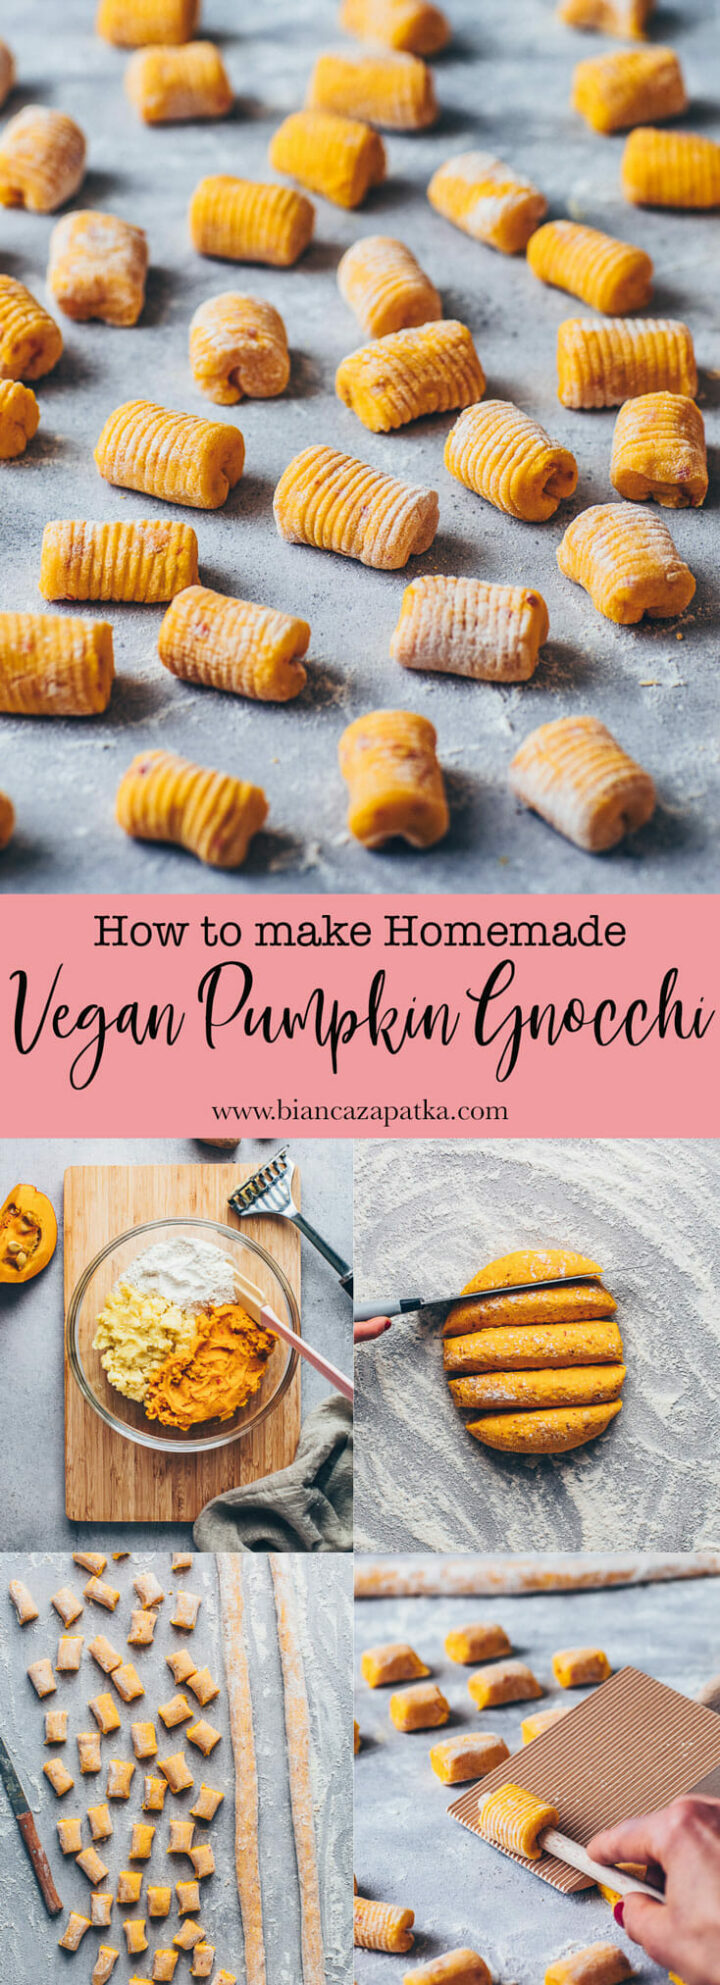 homemade gnocchi from scratch (vegan pumpkin potato dumplings)